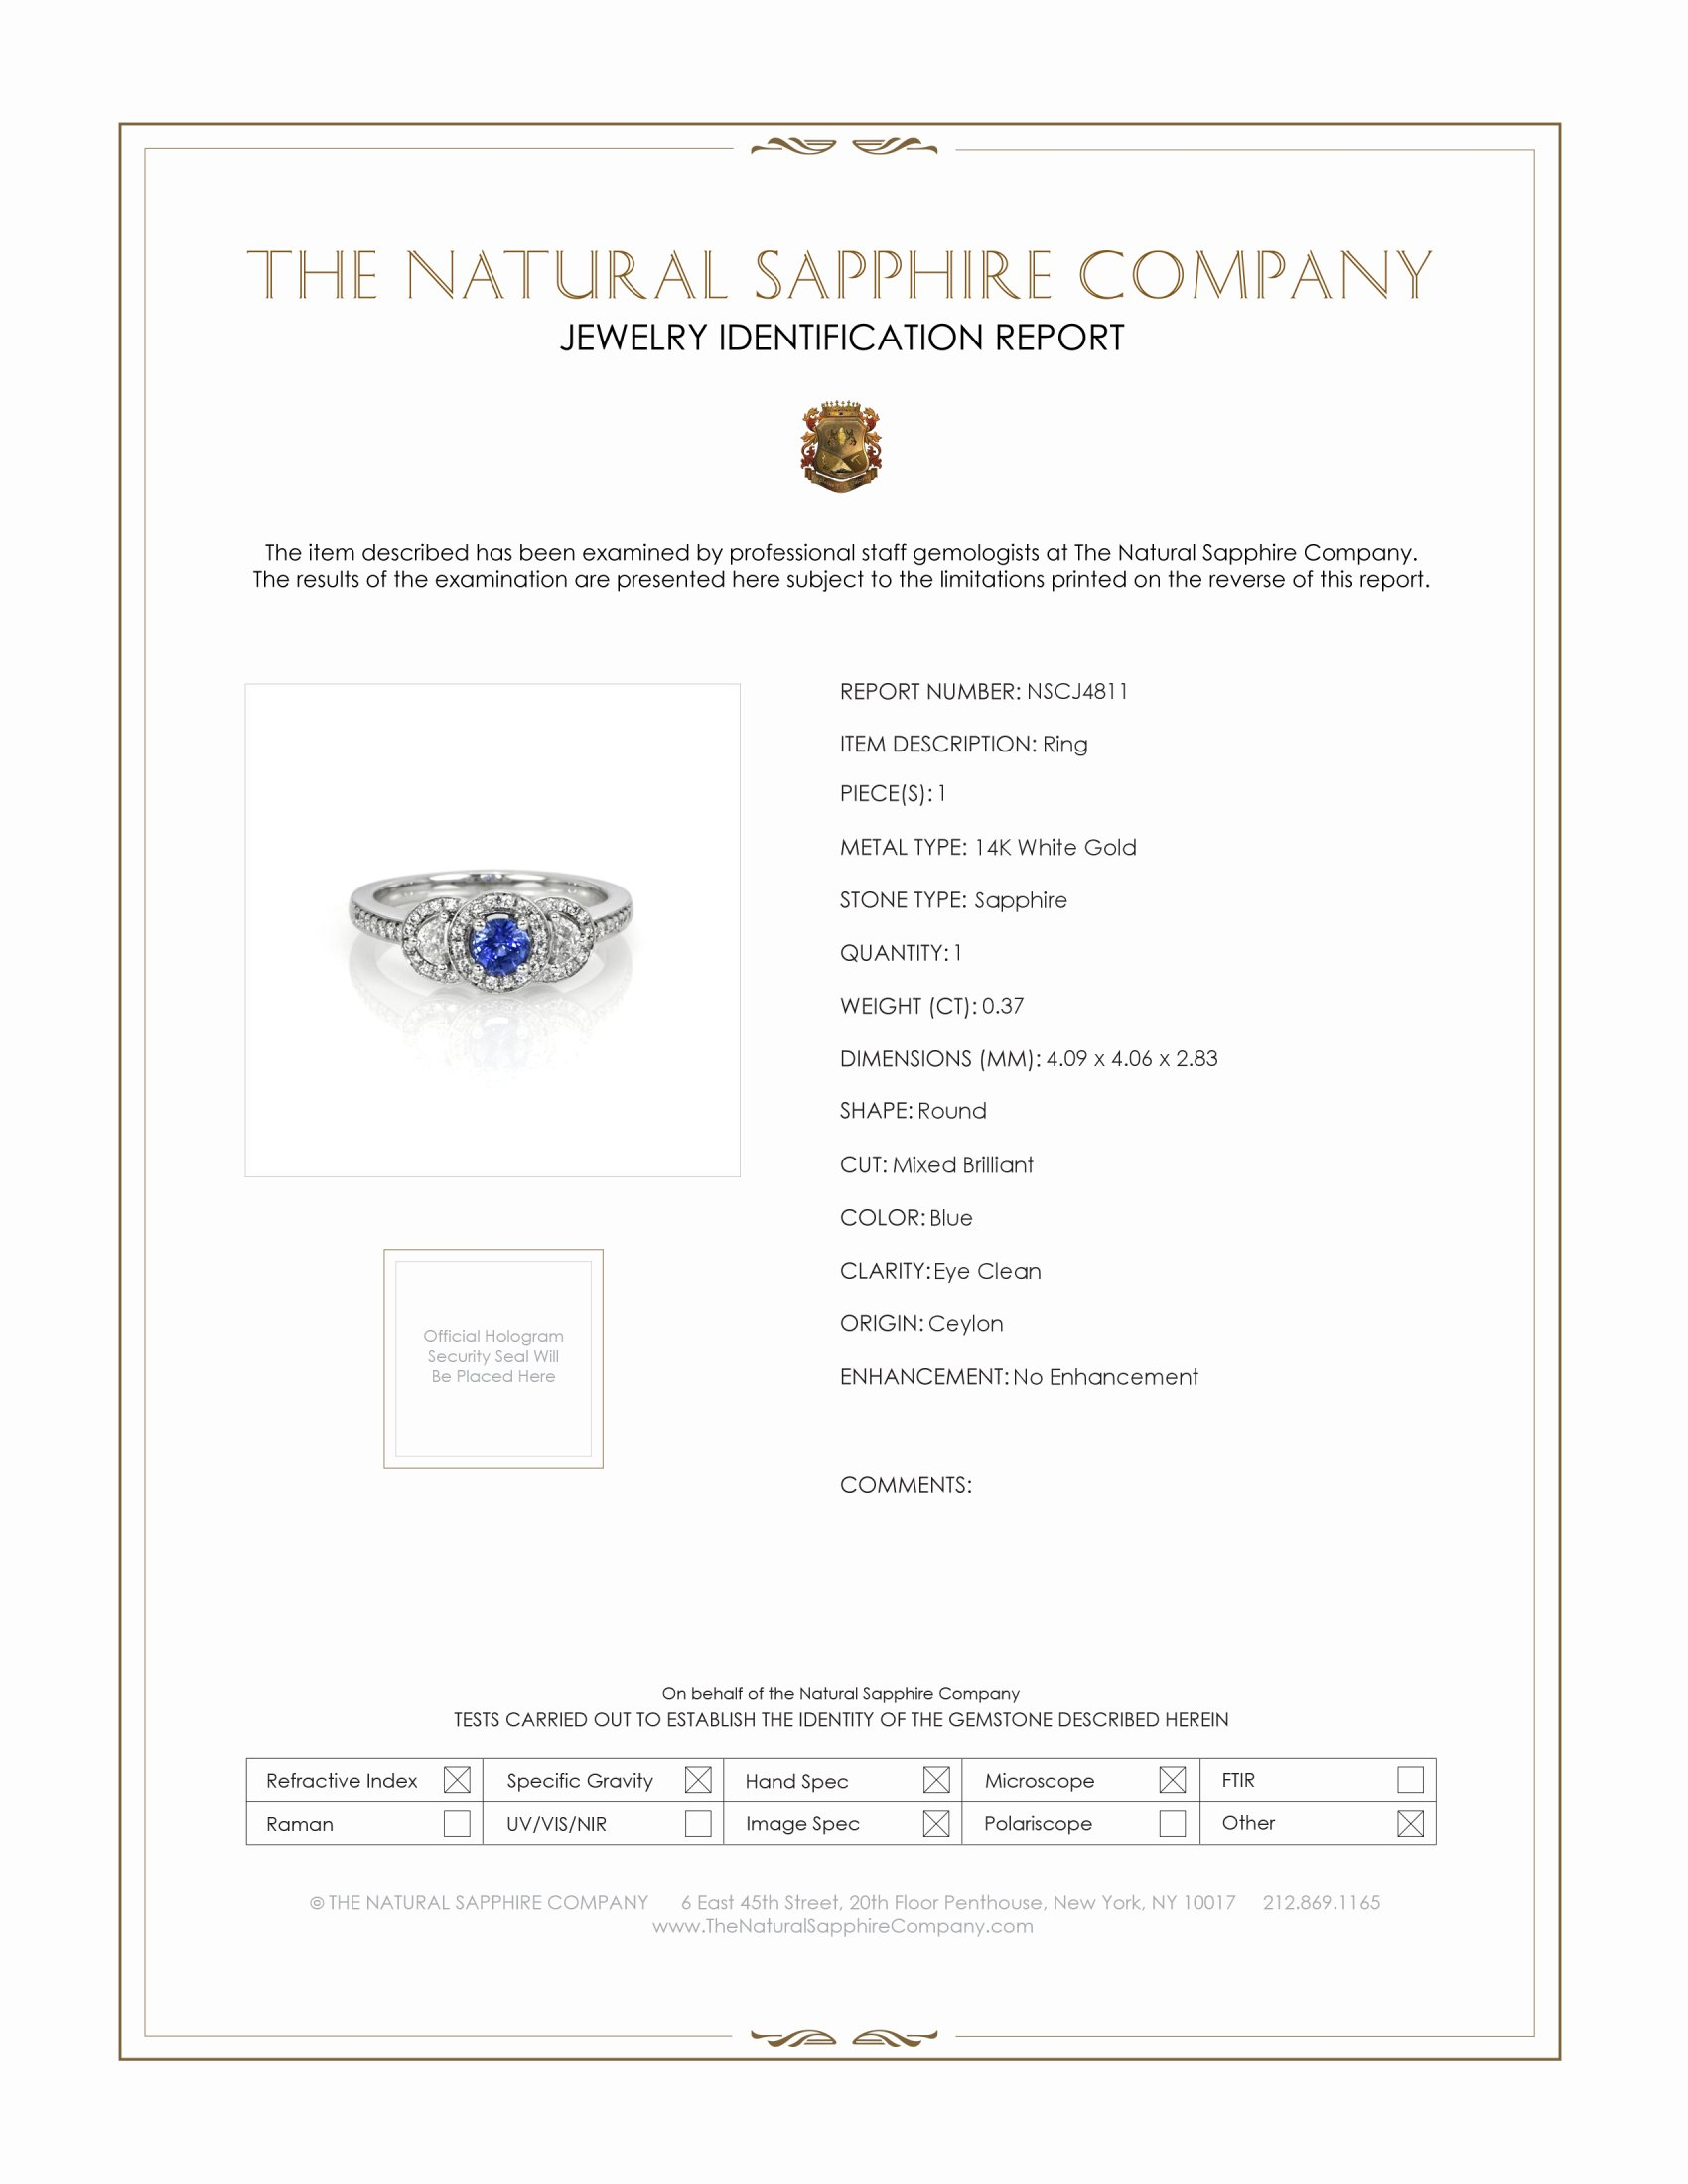 0.37ct Blue Sapphire Ring Certification